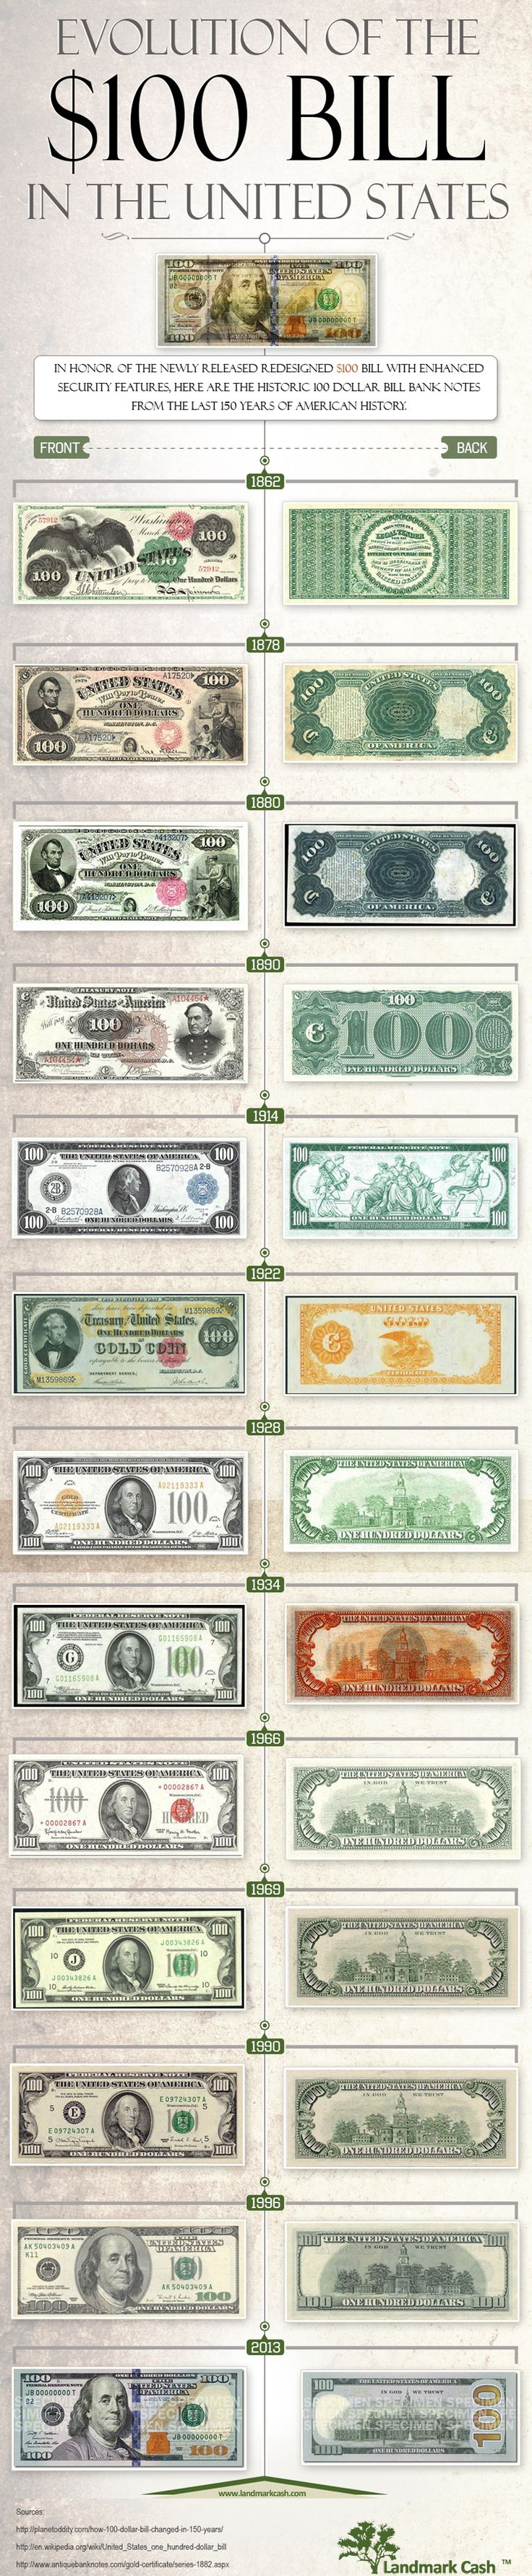 Evolution of the $100 Bill in the United States [Infographic]  http://www.landmarkcash.com/100-dollar-bill.html